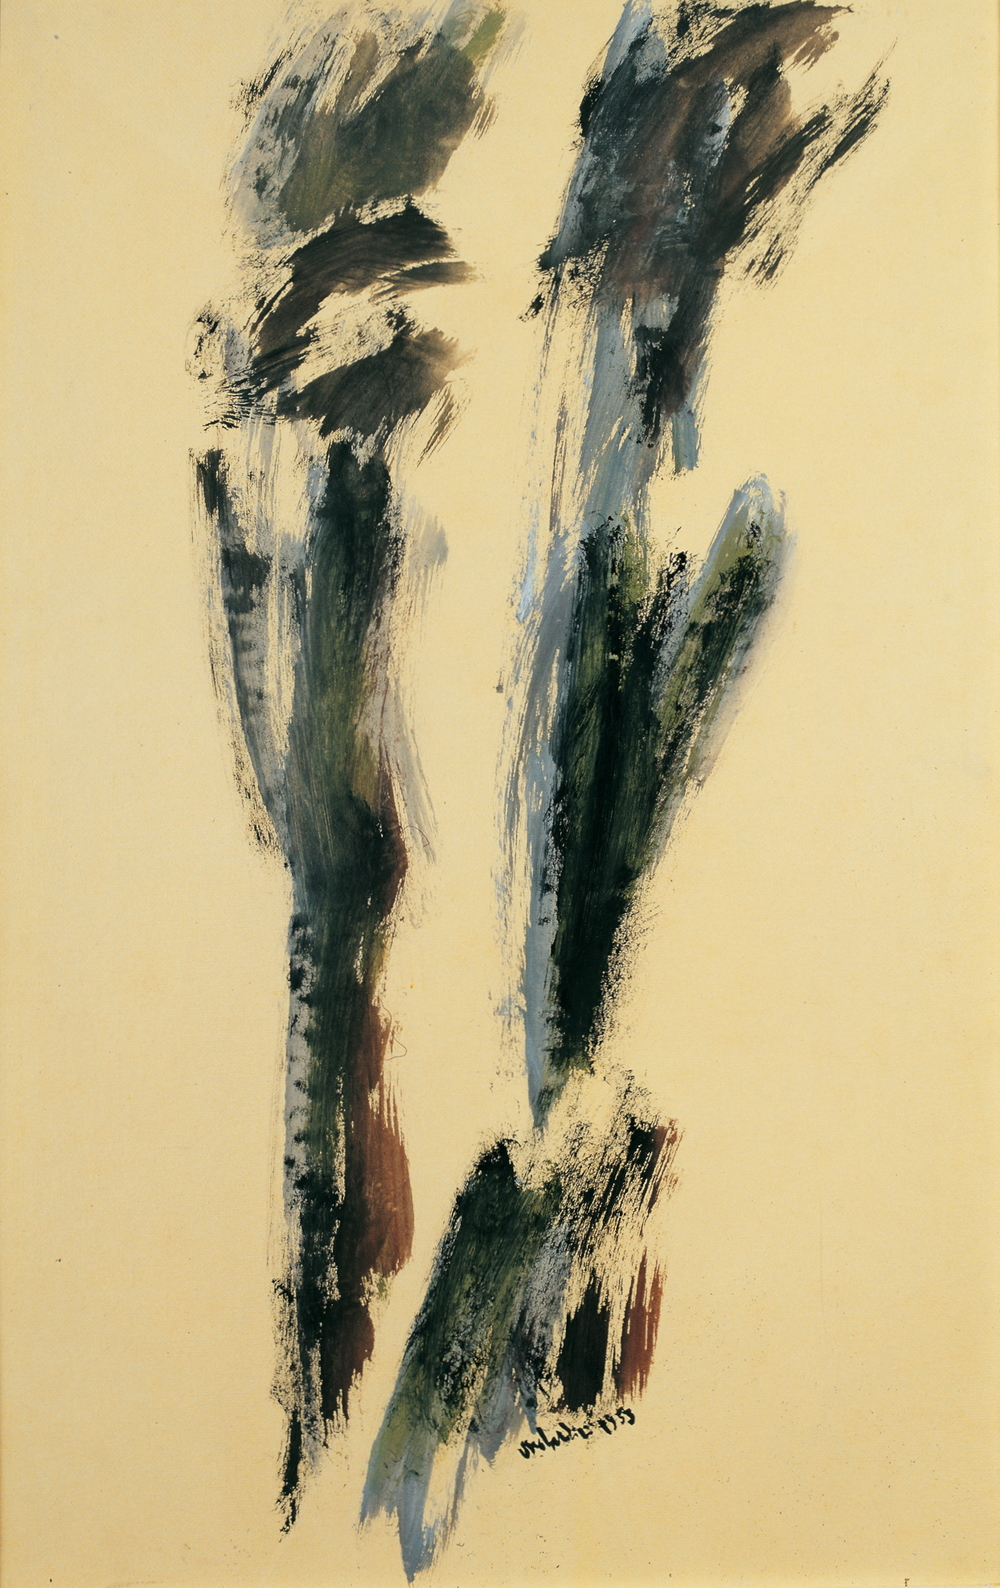 "senza titolo, dalla serie ""I segni segreti"", 1953, tempera su carta intelata, cm 76 x 49,5   untitled, from the series ""I segni segreti"", 1953, tempera on canvassed paper, cm 76 x 49,5"